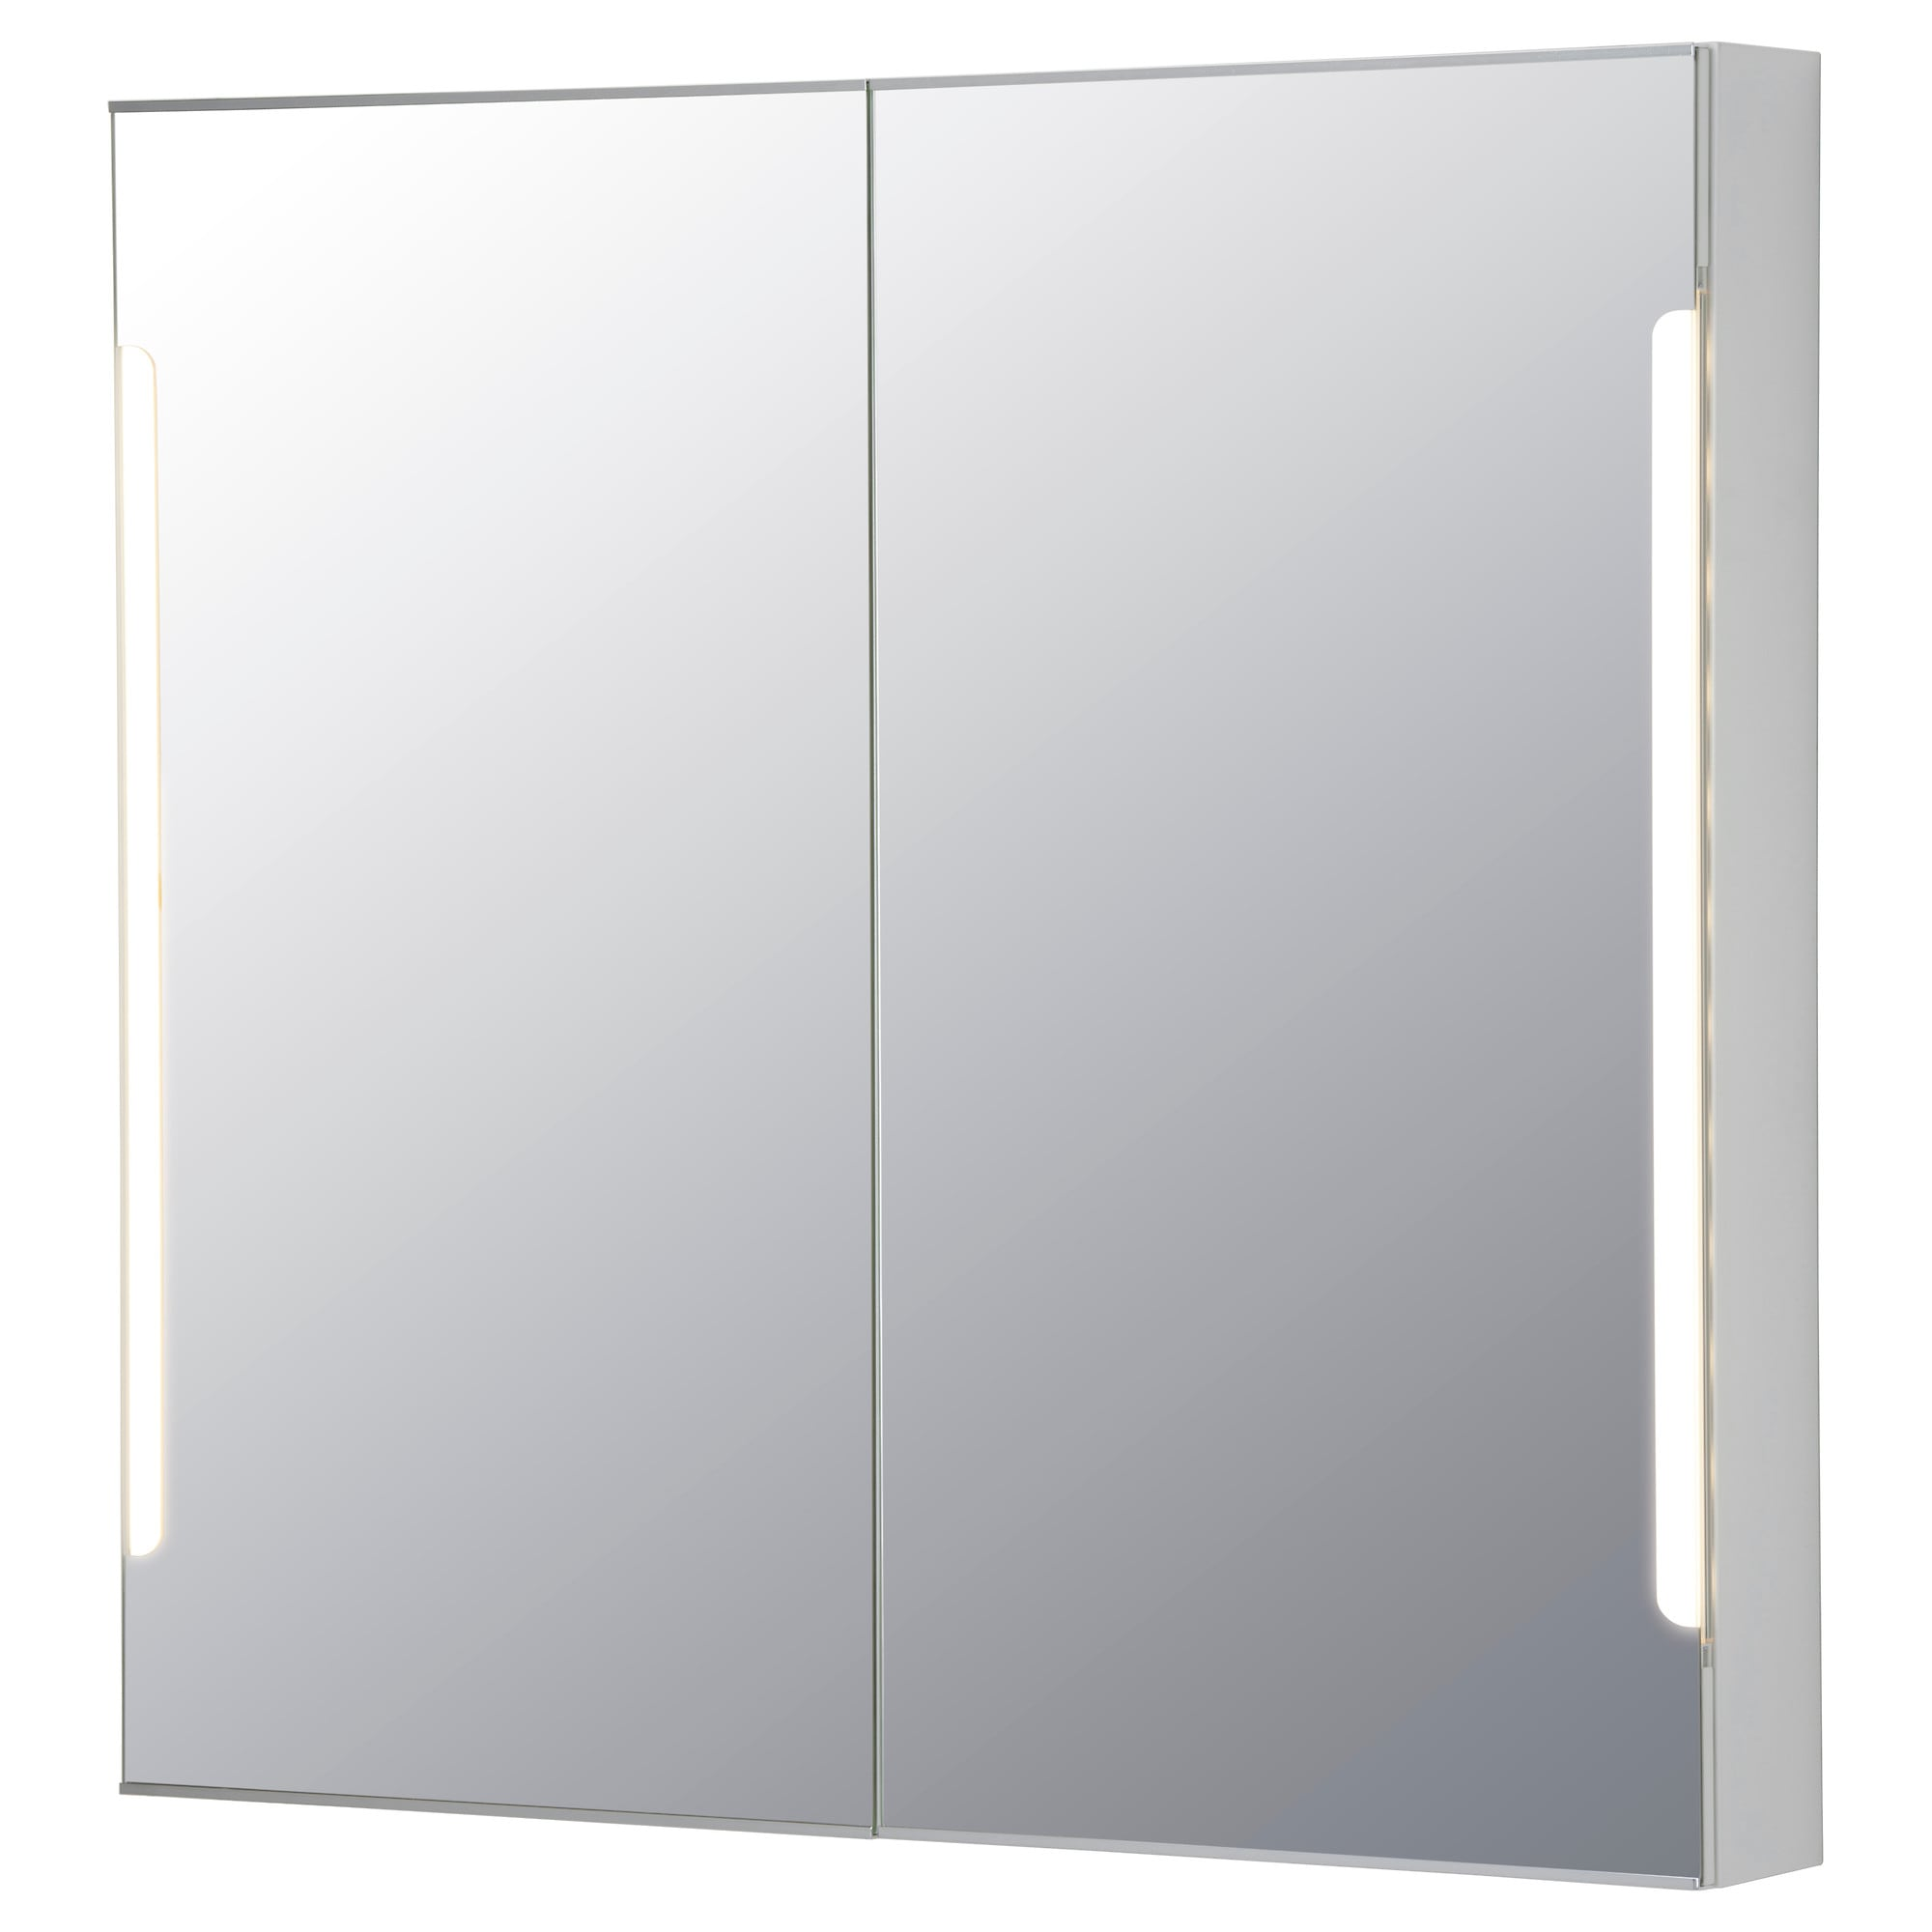 . storjorm mirror cabinet w doors  light  ikea